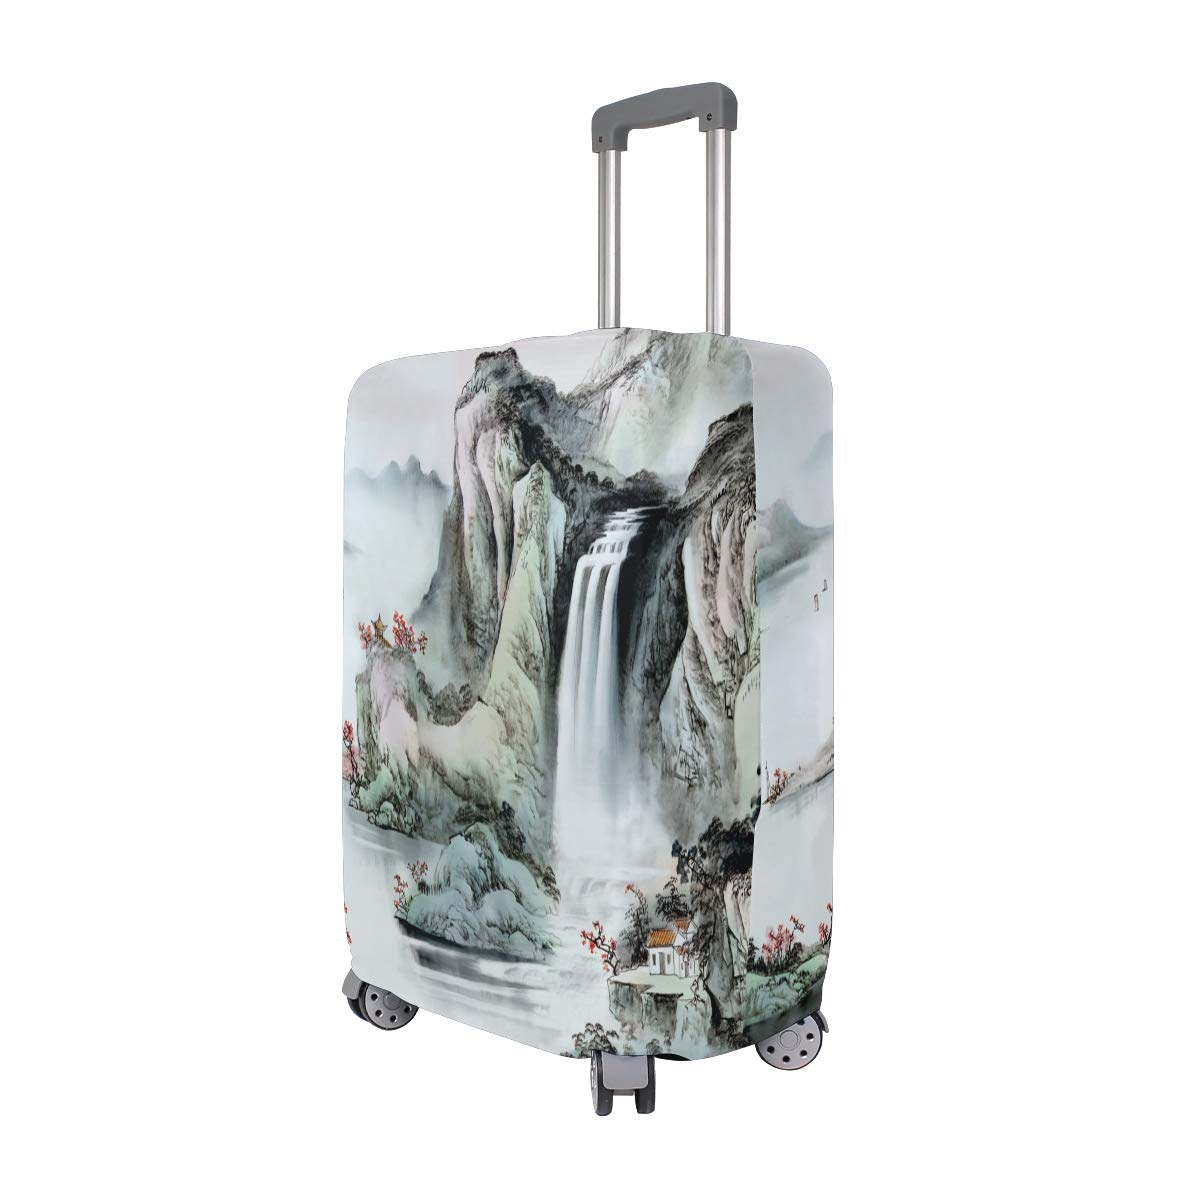 Chinese Landscape Painting suitcase cover elastic suitcase cover zipper luggage case removable cleaning suitable for 29-32 trunk cover